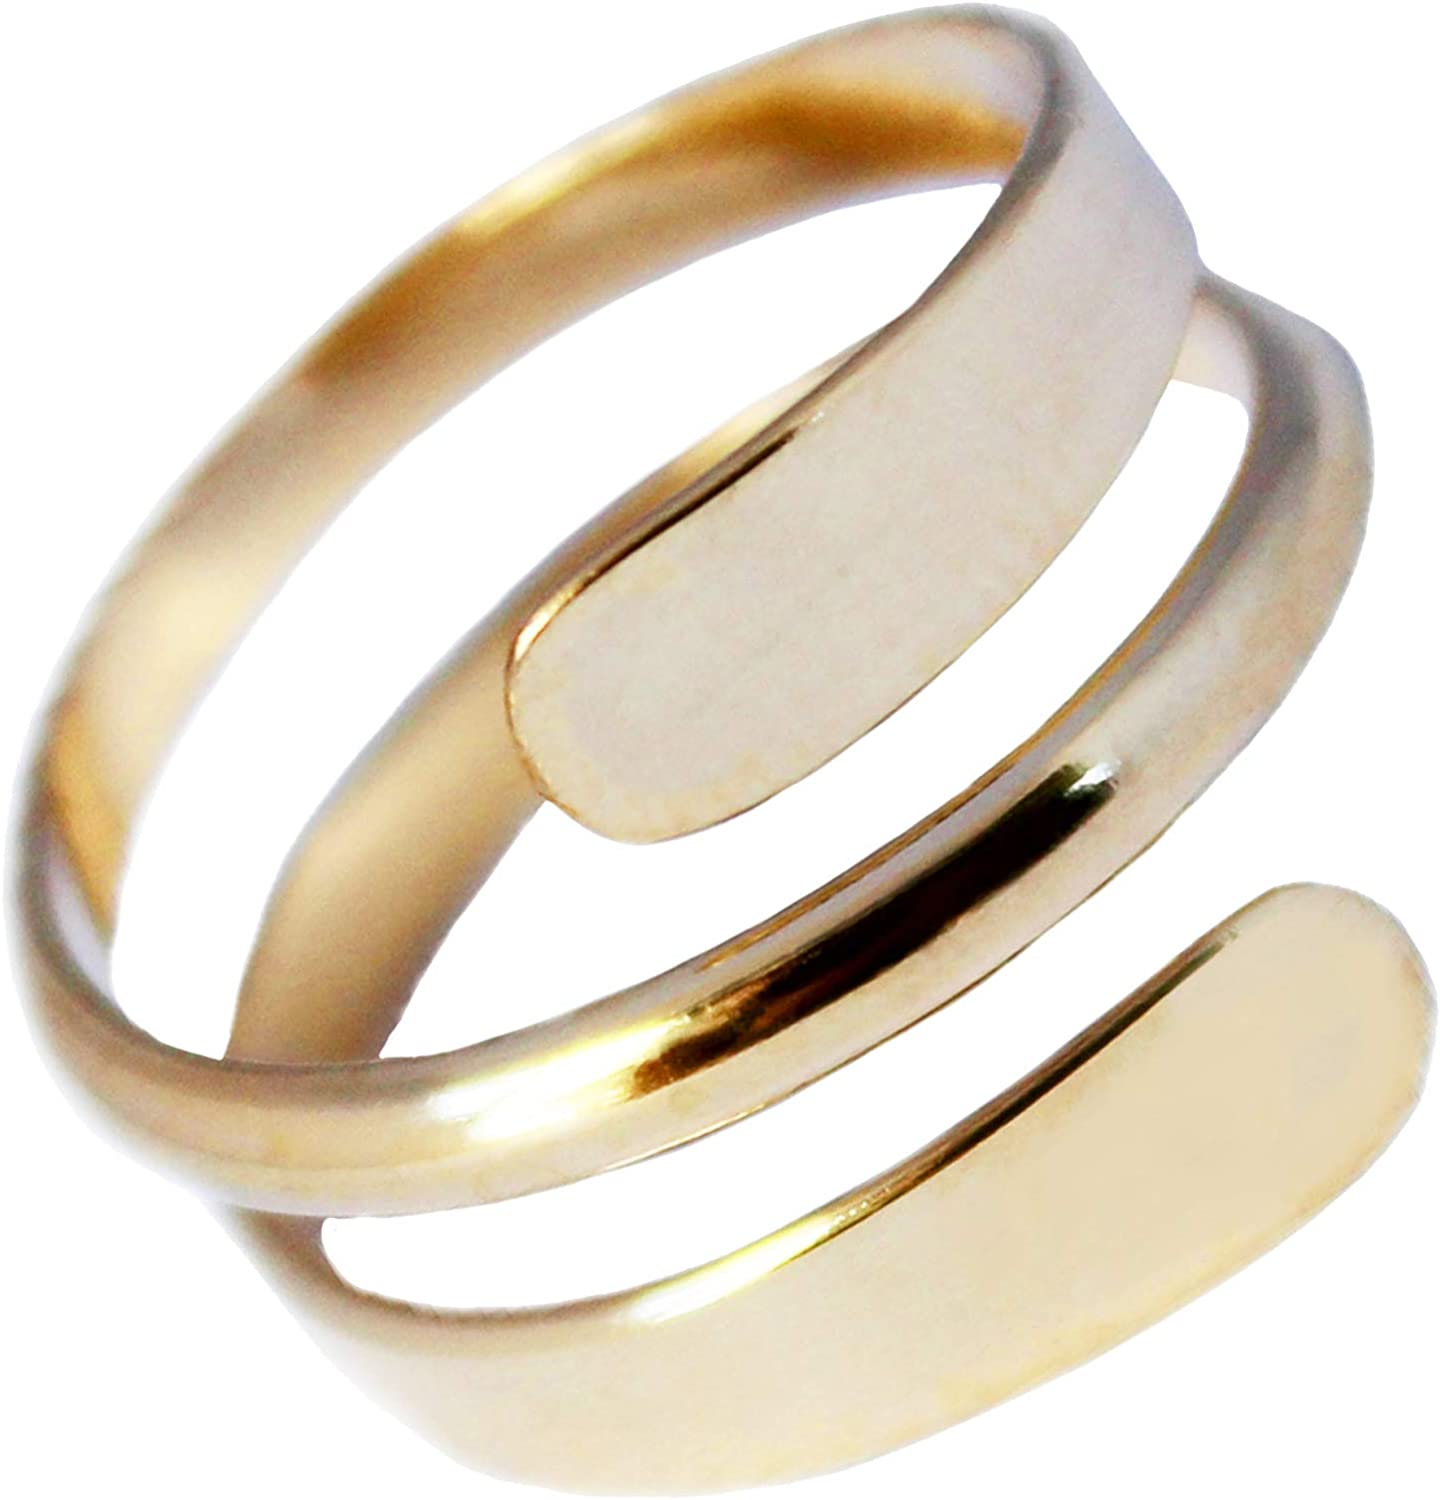 Toe Ring | 14K Gold Filled Pipeline Wrap Ring | Adjustable Ring for Toe or Midi | Unisex Men or Women | Made in the USA